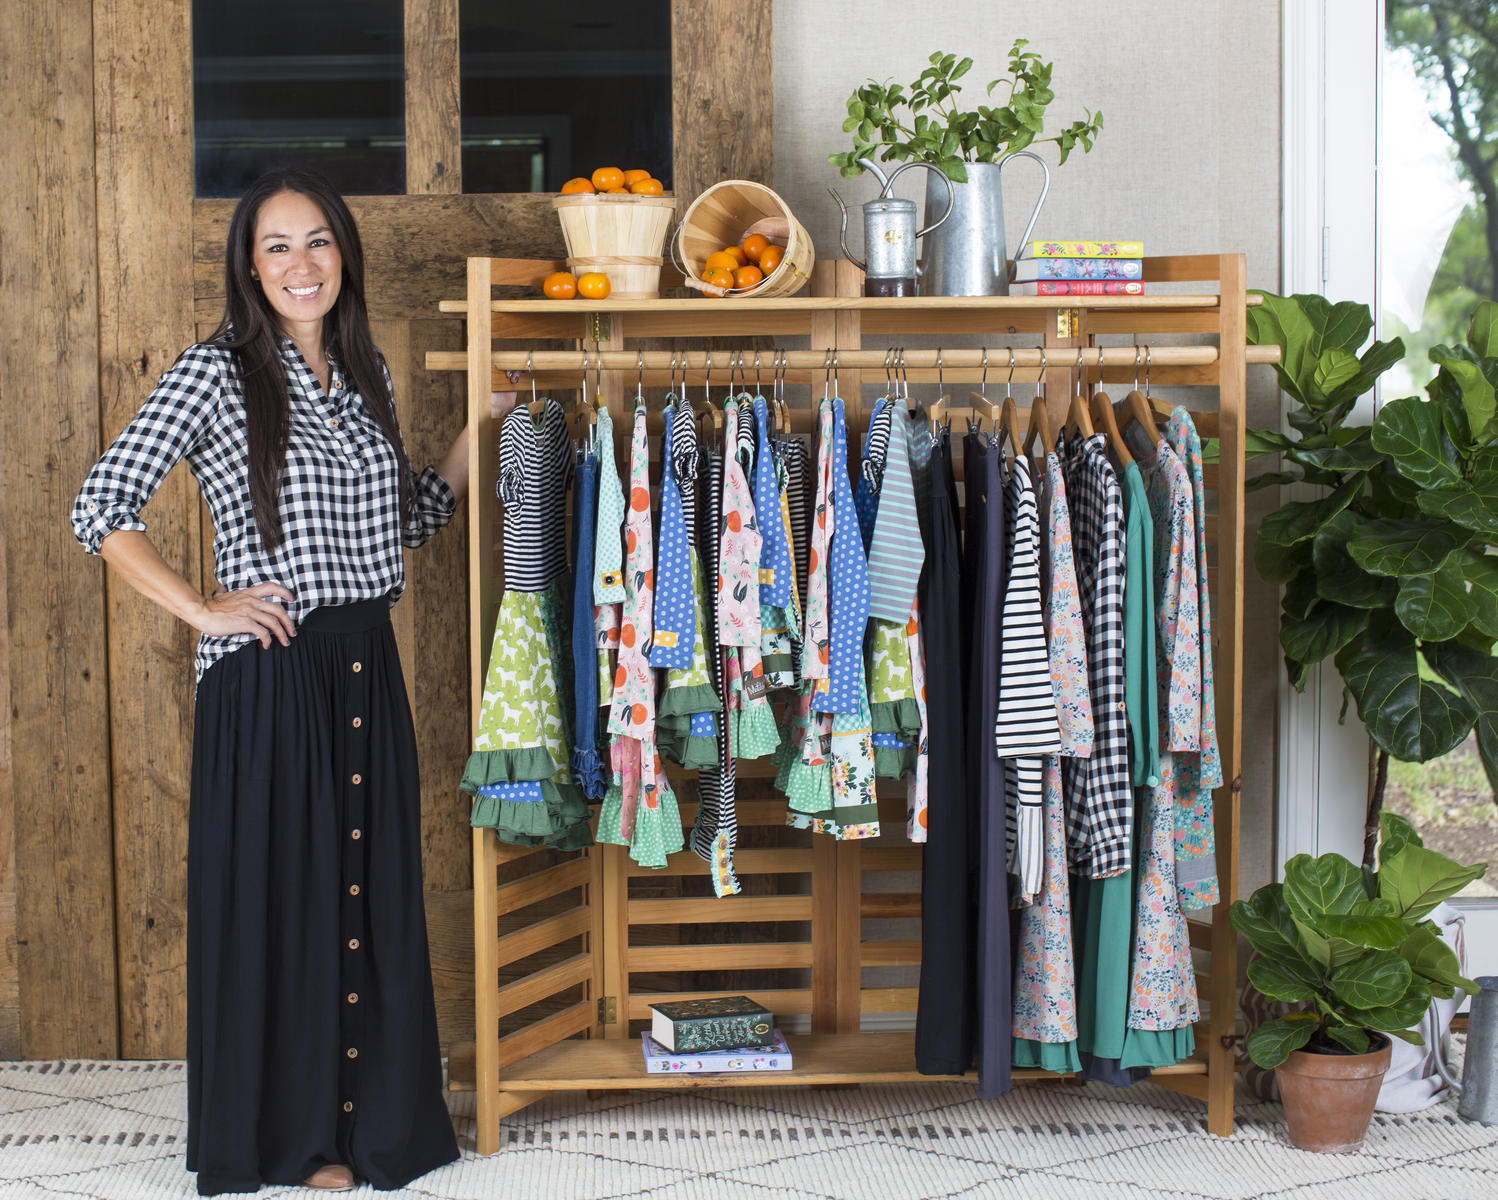 Christmas dress attire for age 57 - See Joanna Gaines Sweet Kids Clothing Line For Matilda Jane